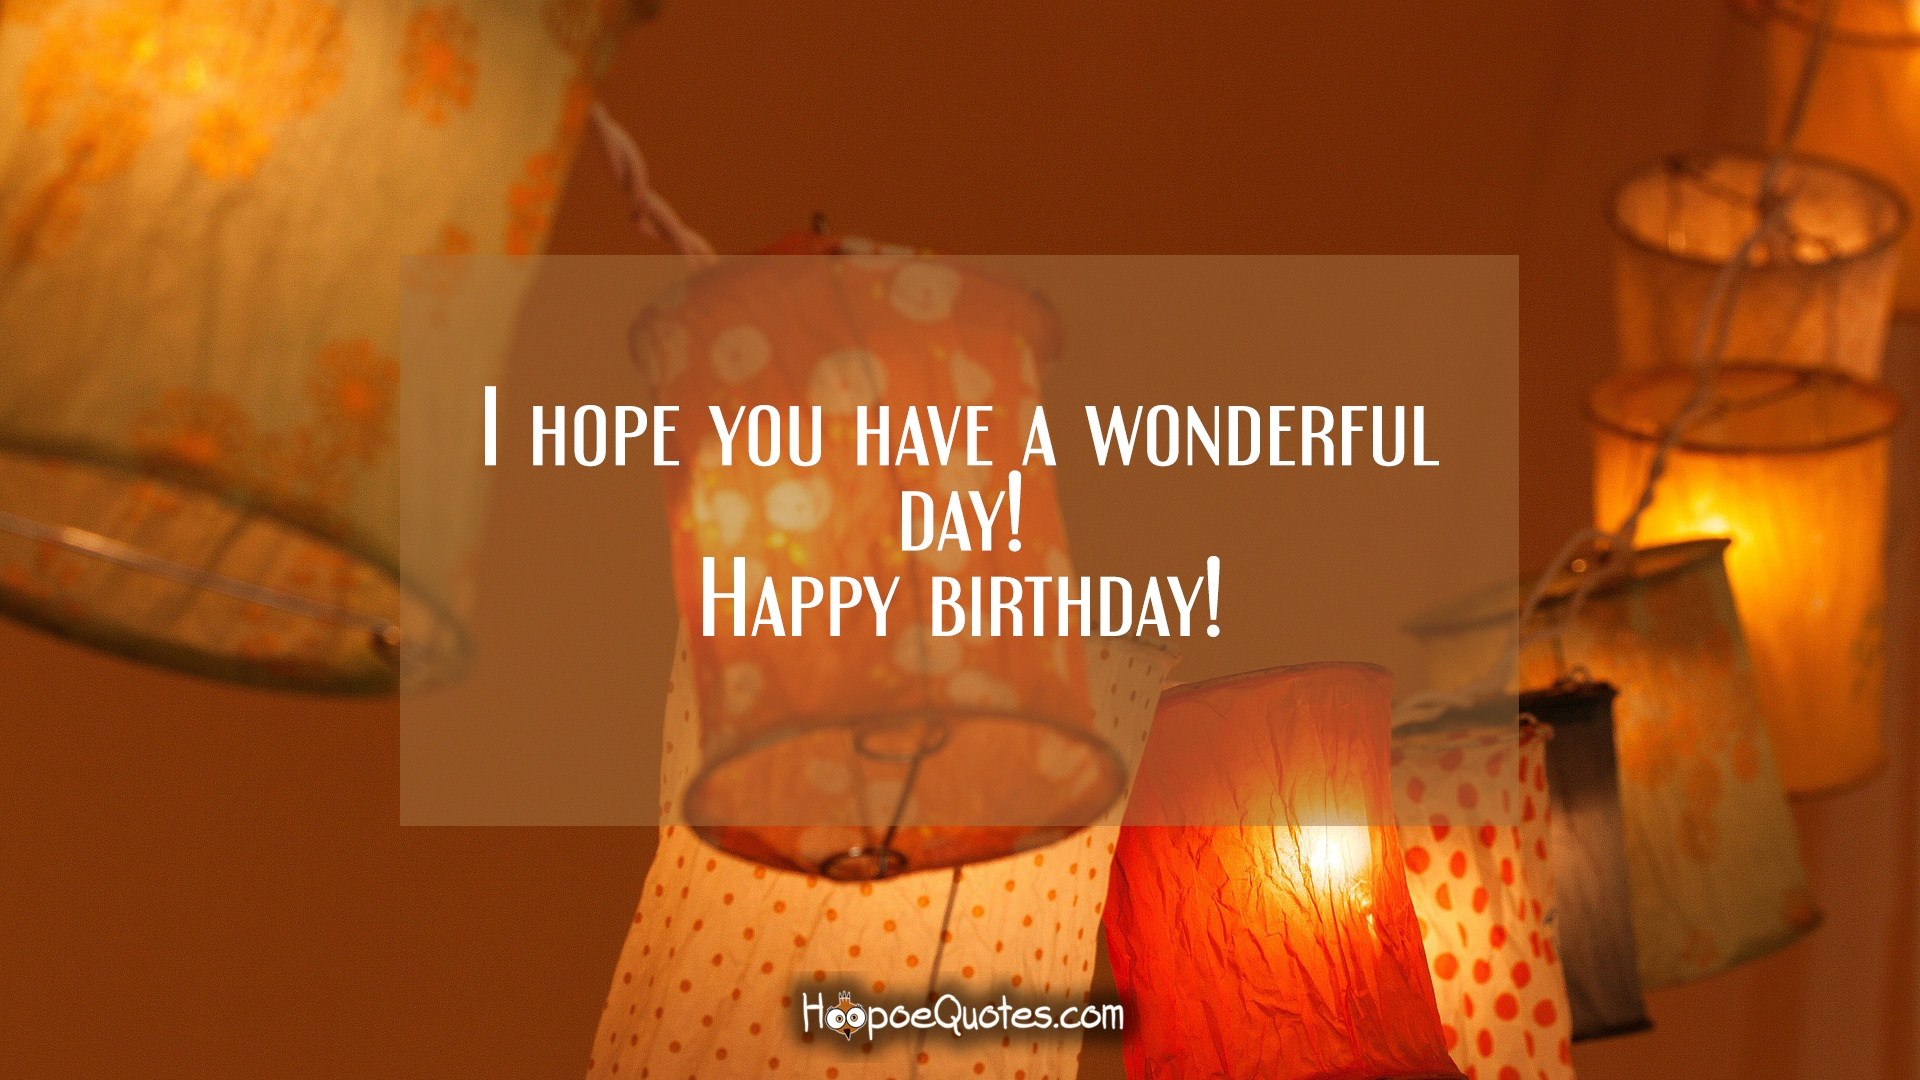 I Hope You Have A Wonderful Day Happy Birthday Hoopoequotes